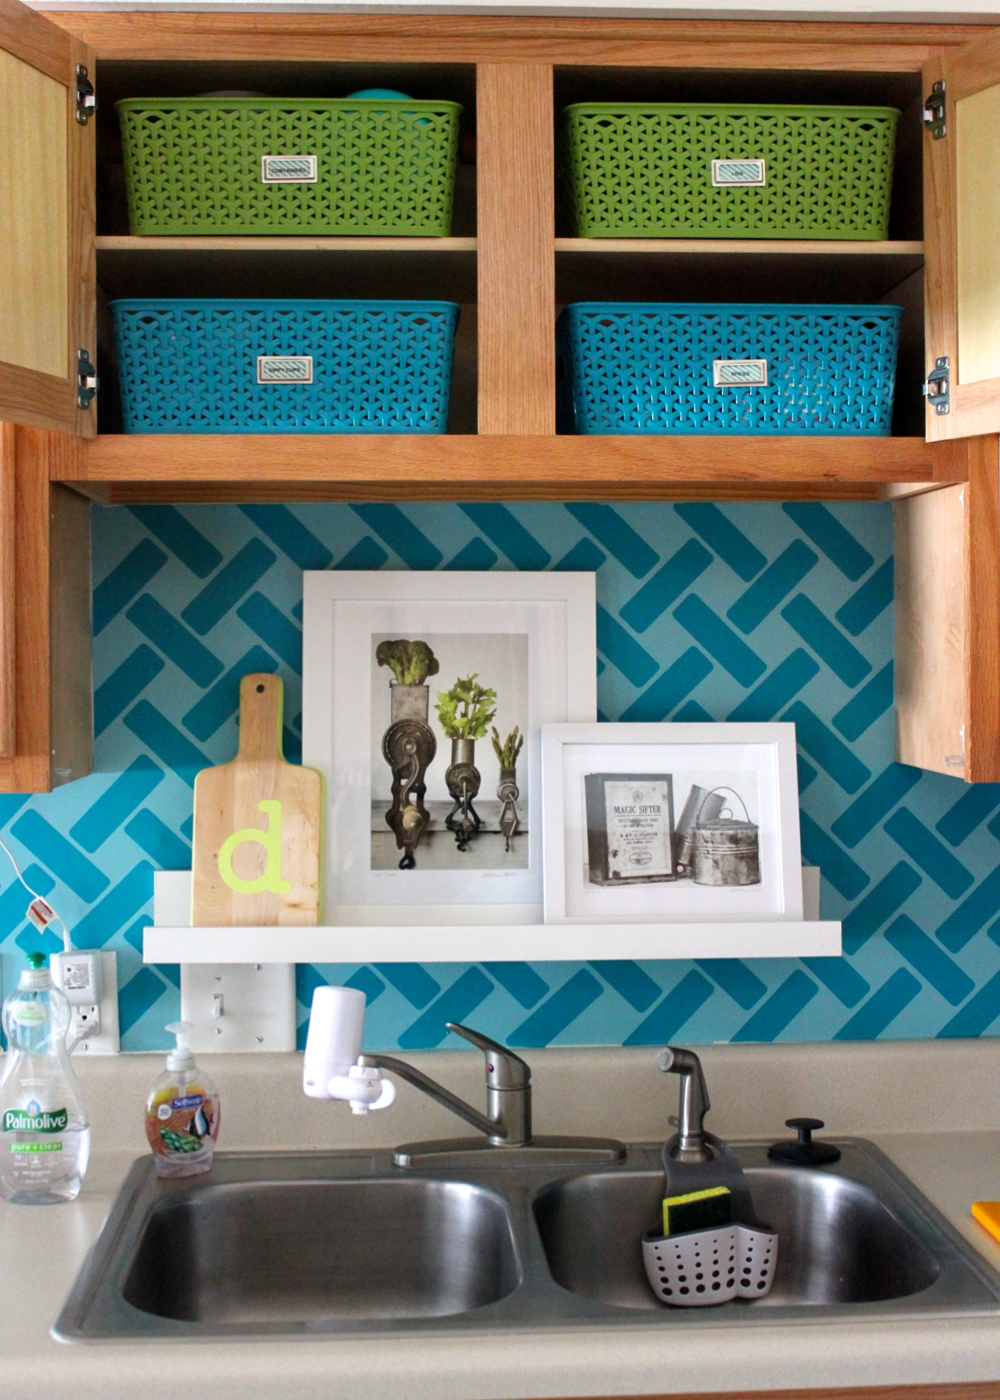 Storage ideas for little upper cabinets the homes i have for Cabinet storage ideas kitchen